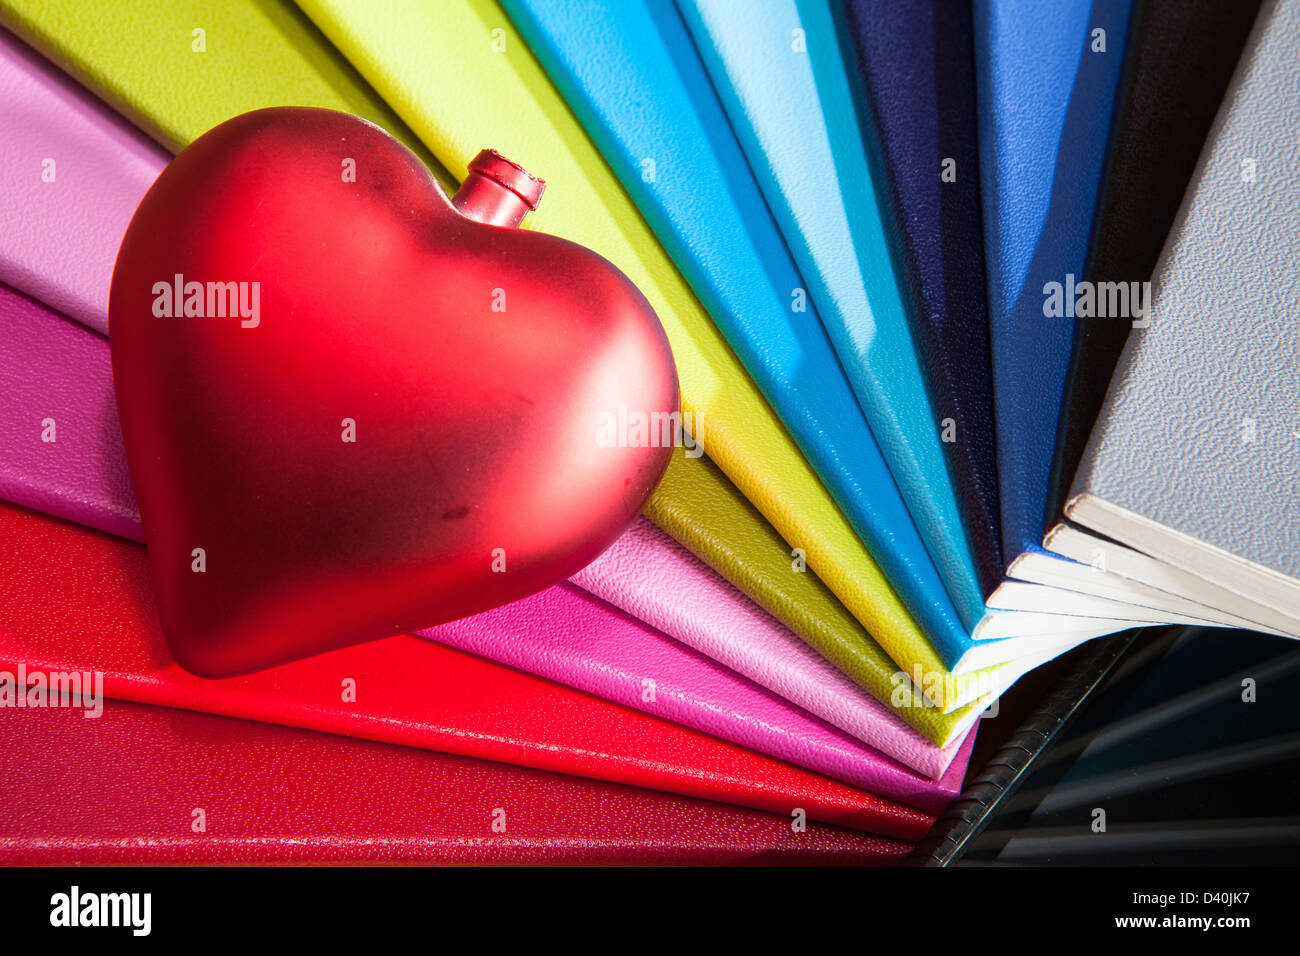 Twelve diaries and red heart - Stock Image